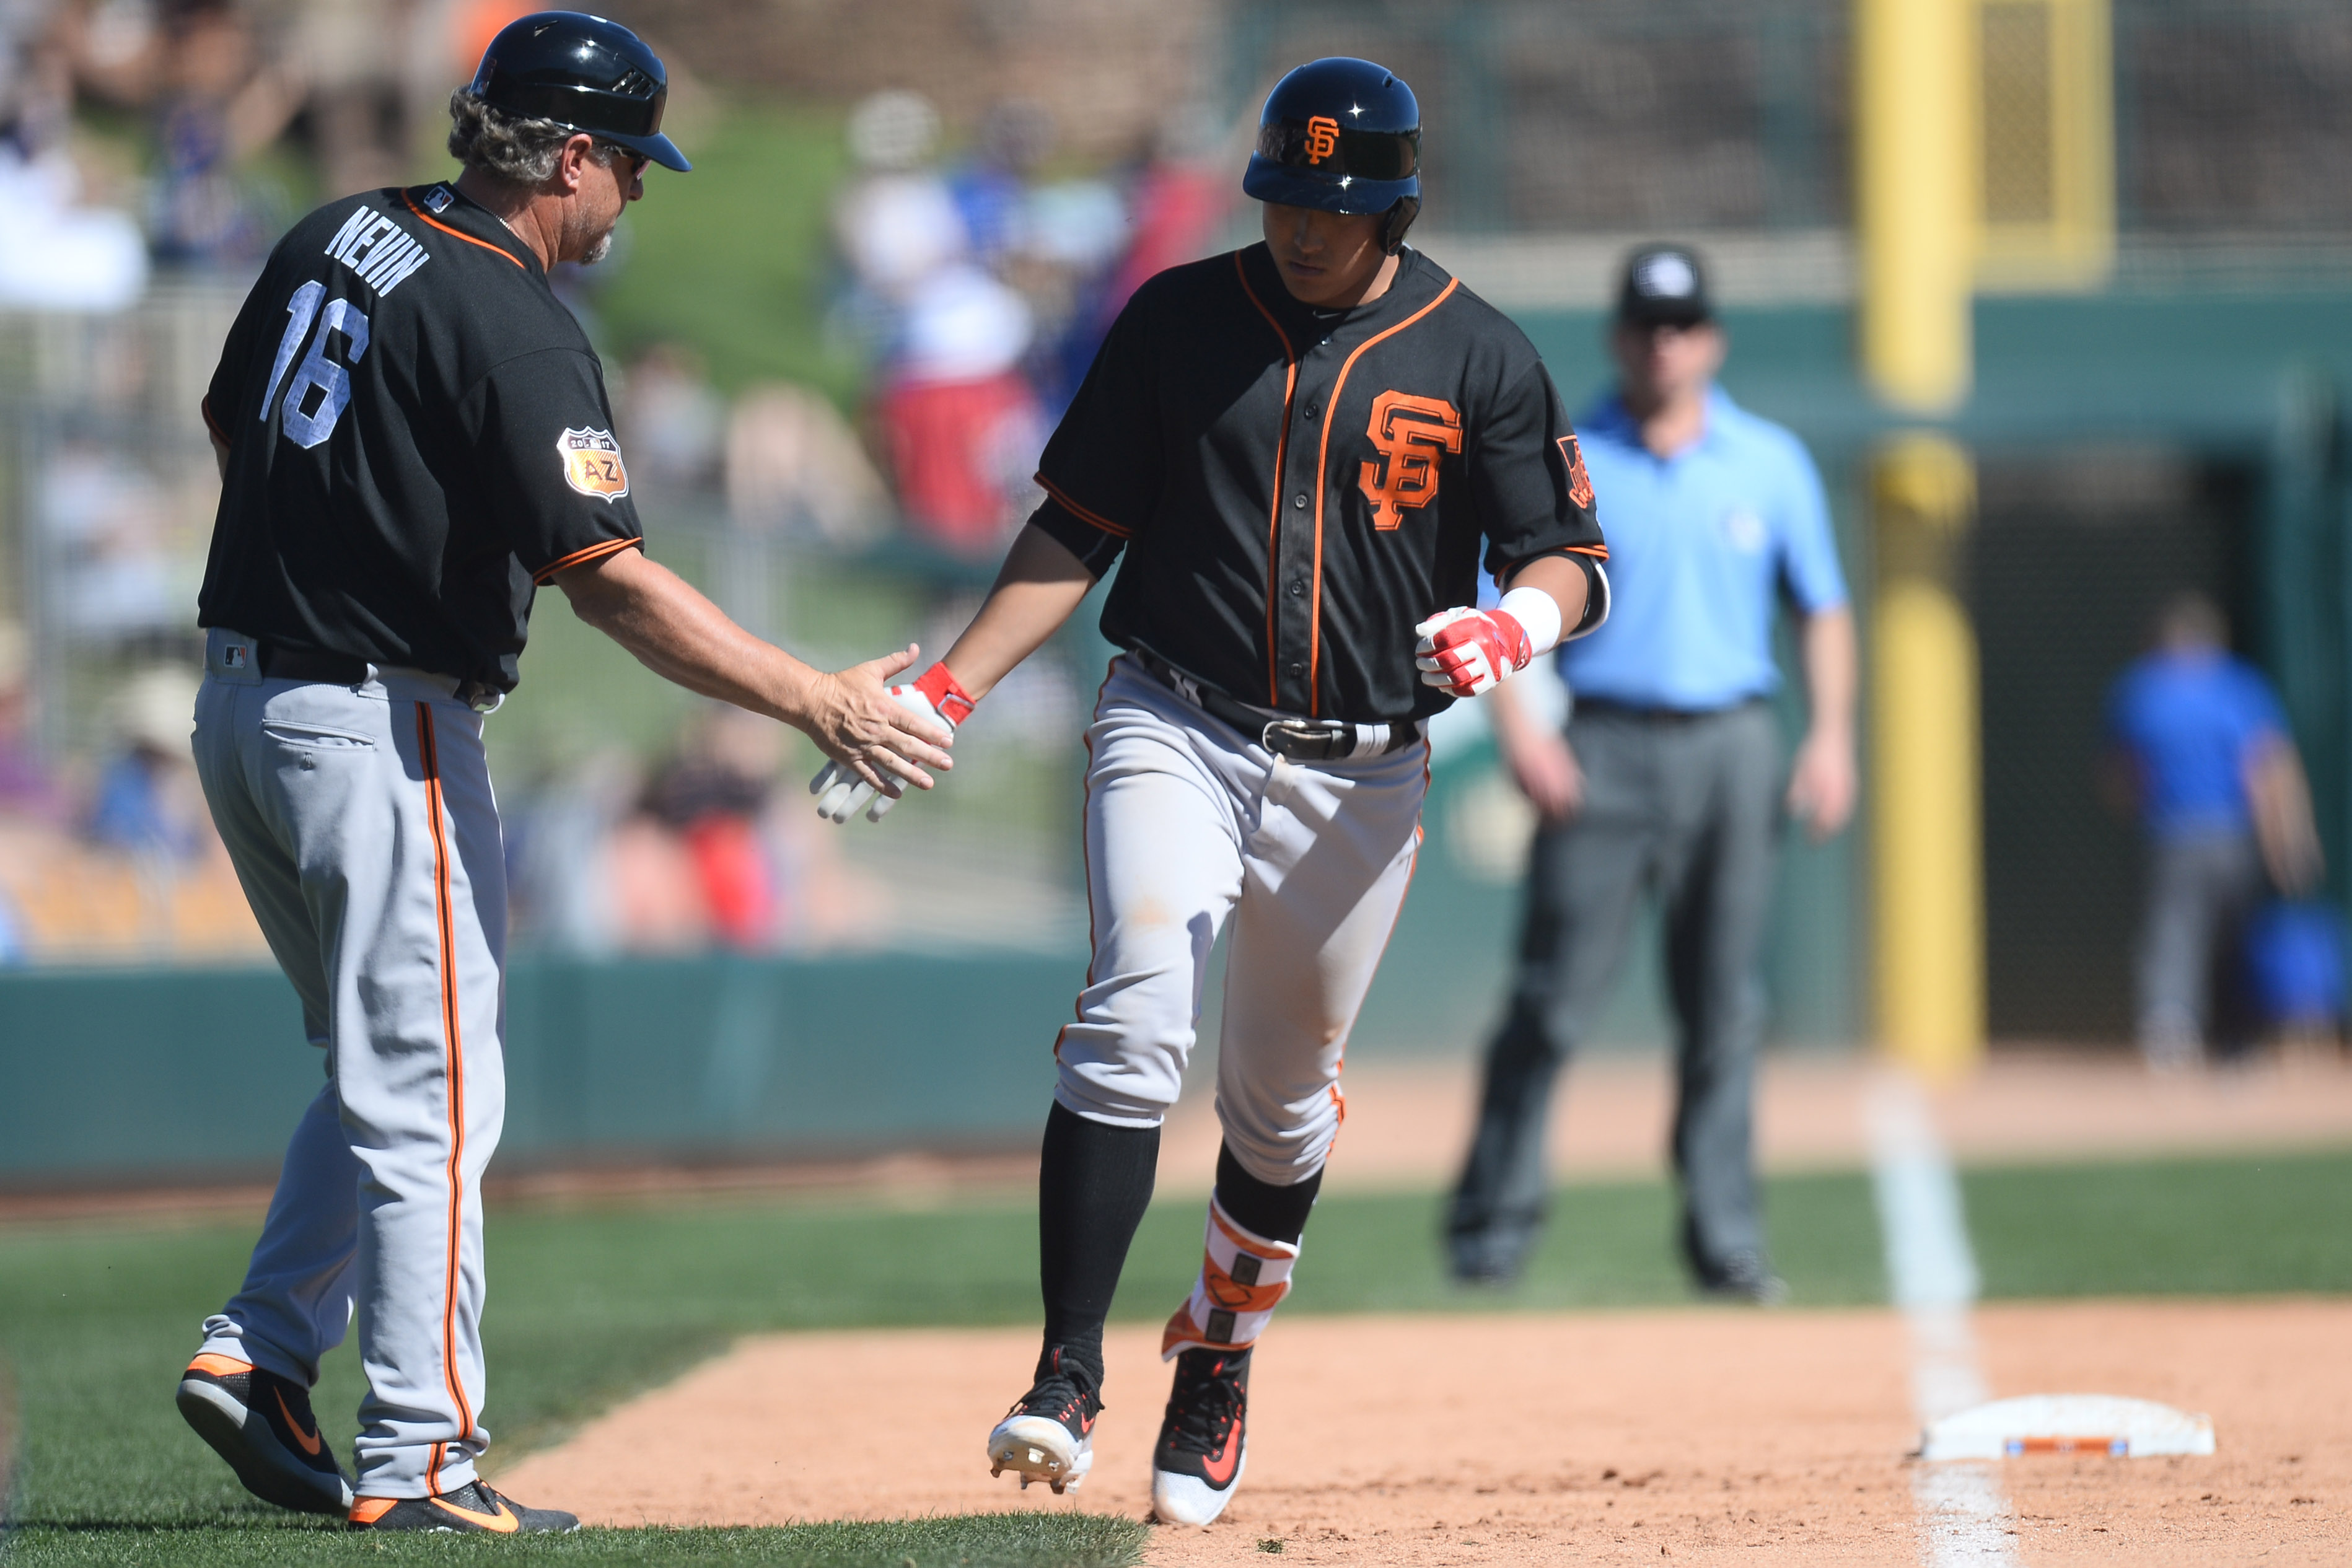 9924812-mlb-spring-training-san-francisco-giants-at-los-angeles-dodgers